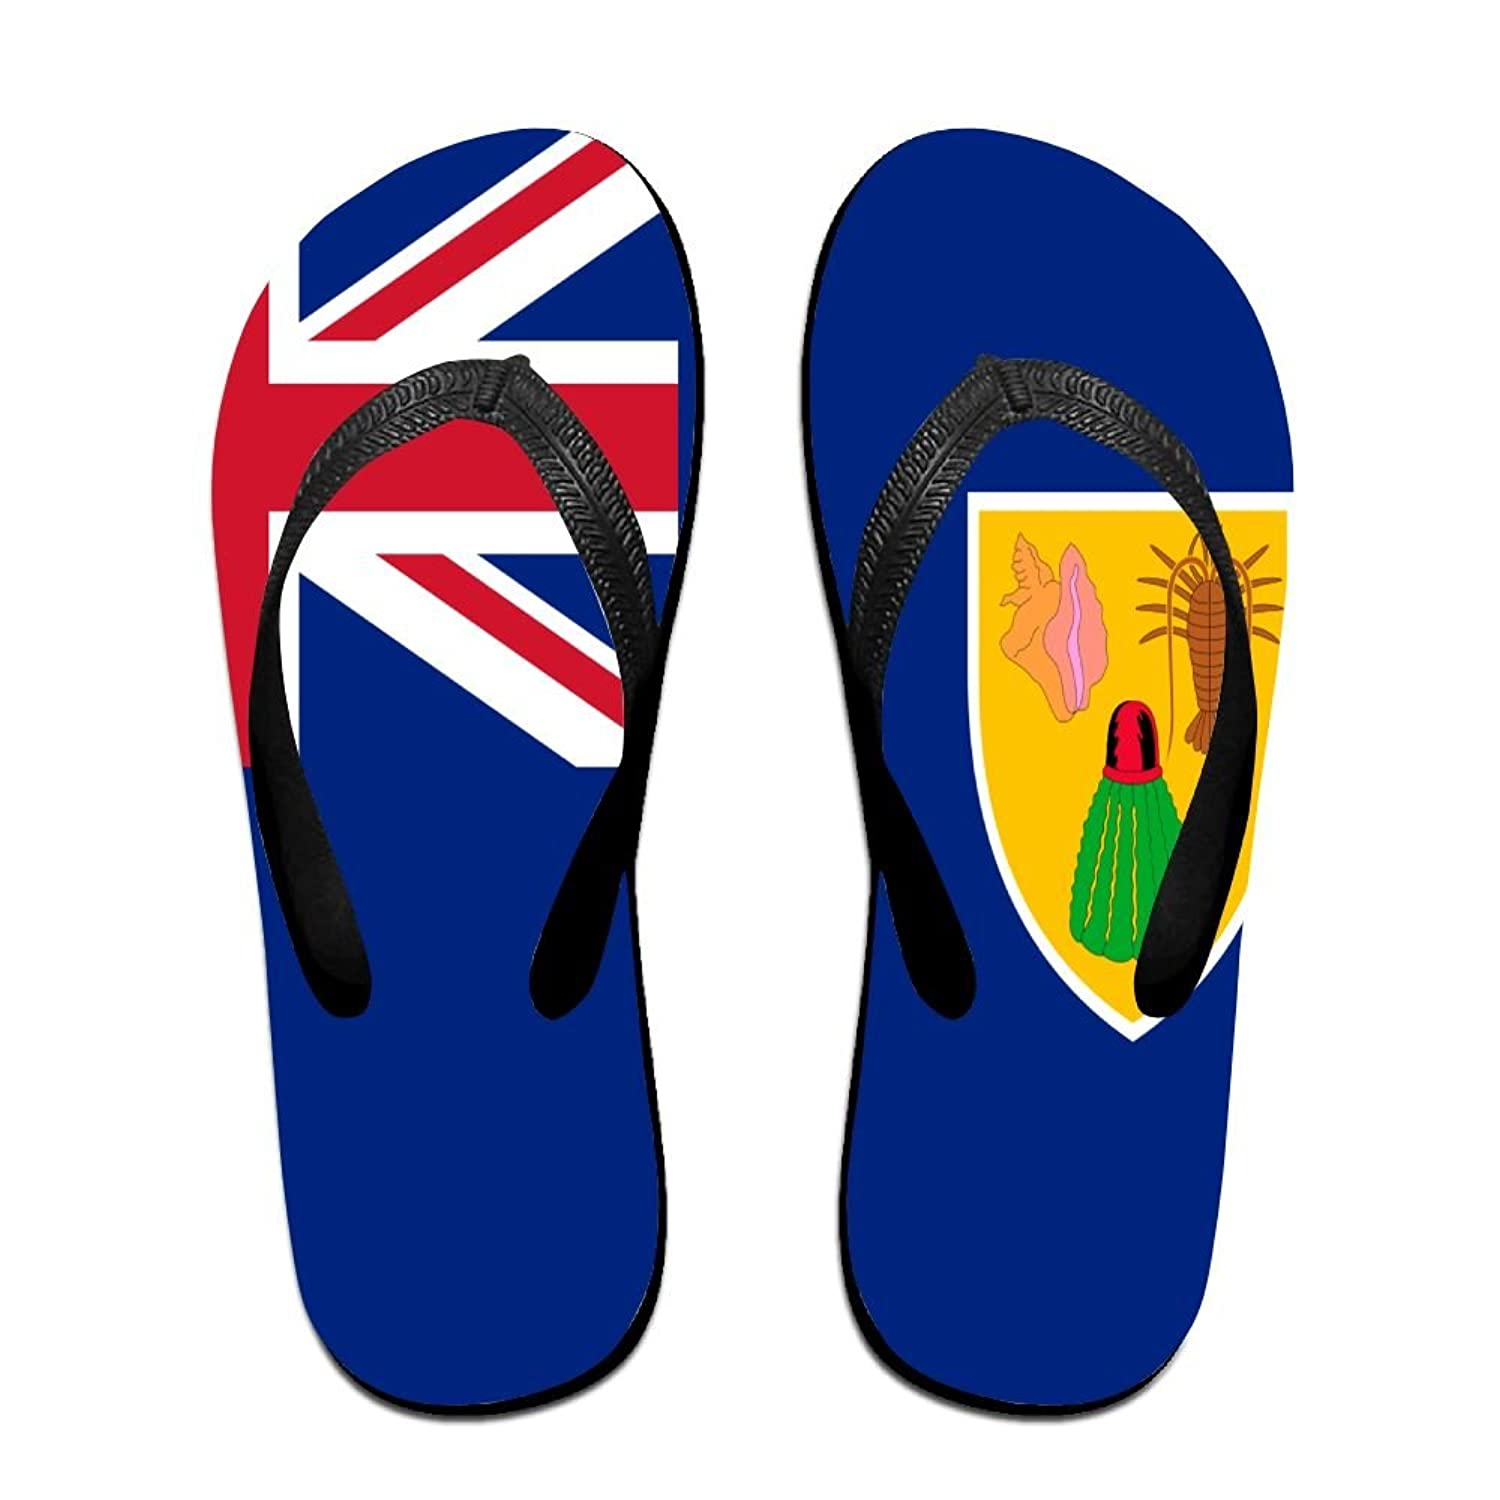 Flag Of The Turks And Caicos Islands Cozy Flip Flops For Children Adults Men And Women Beach Sandals Pool Party Slippers